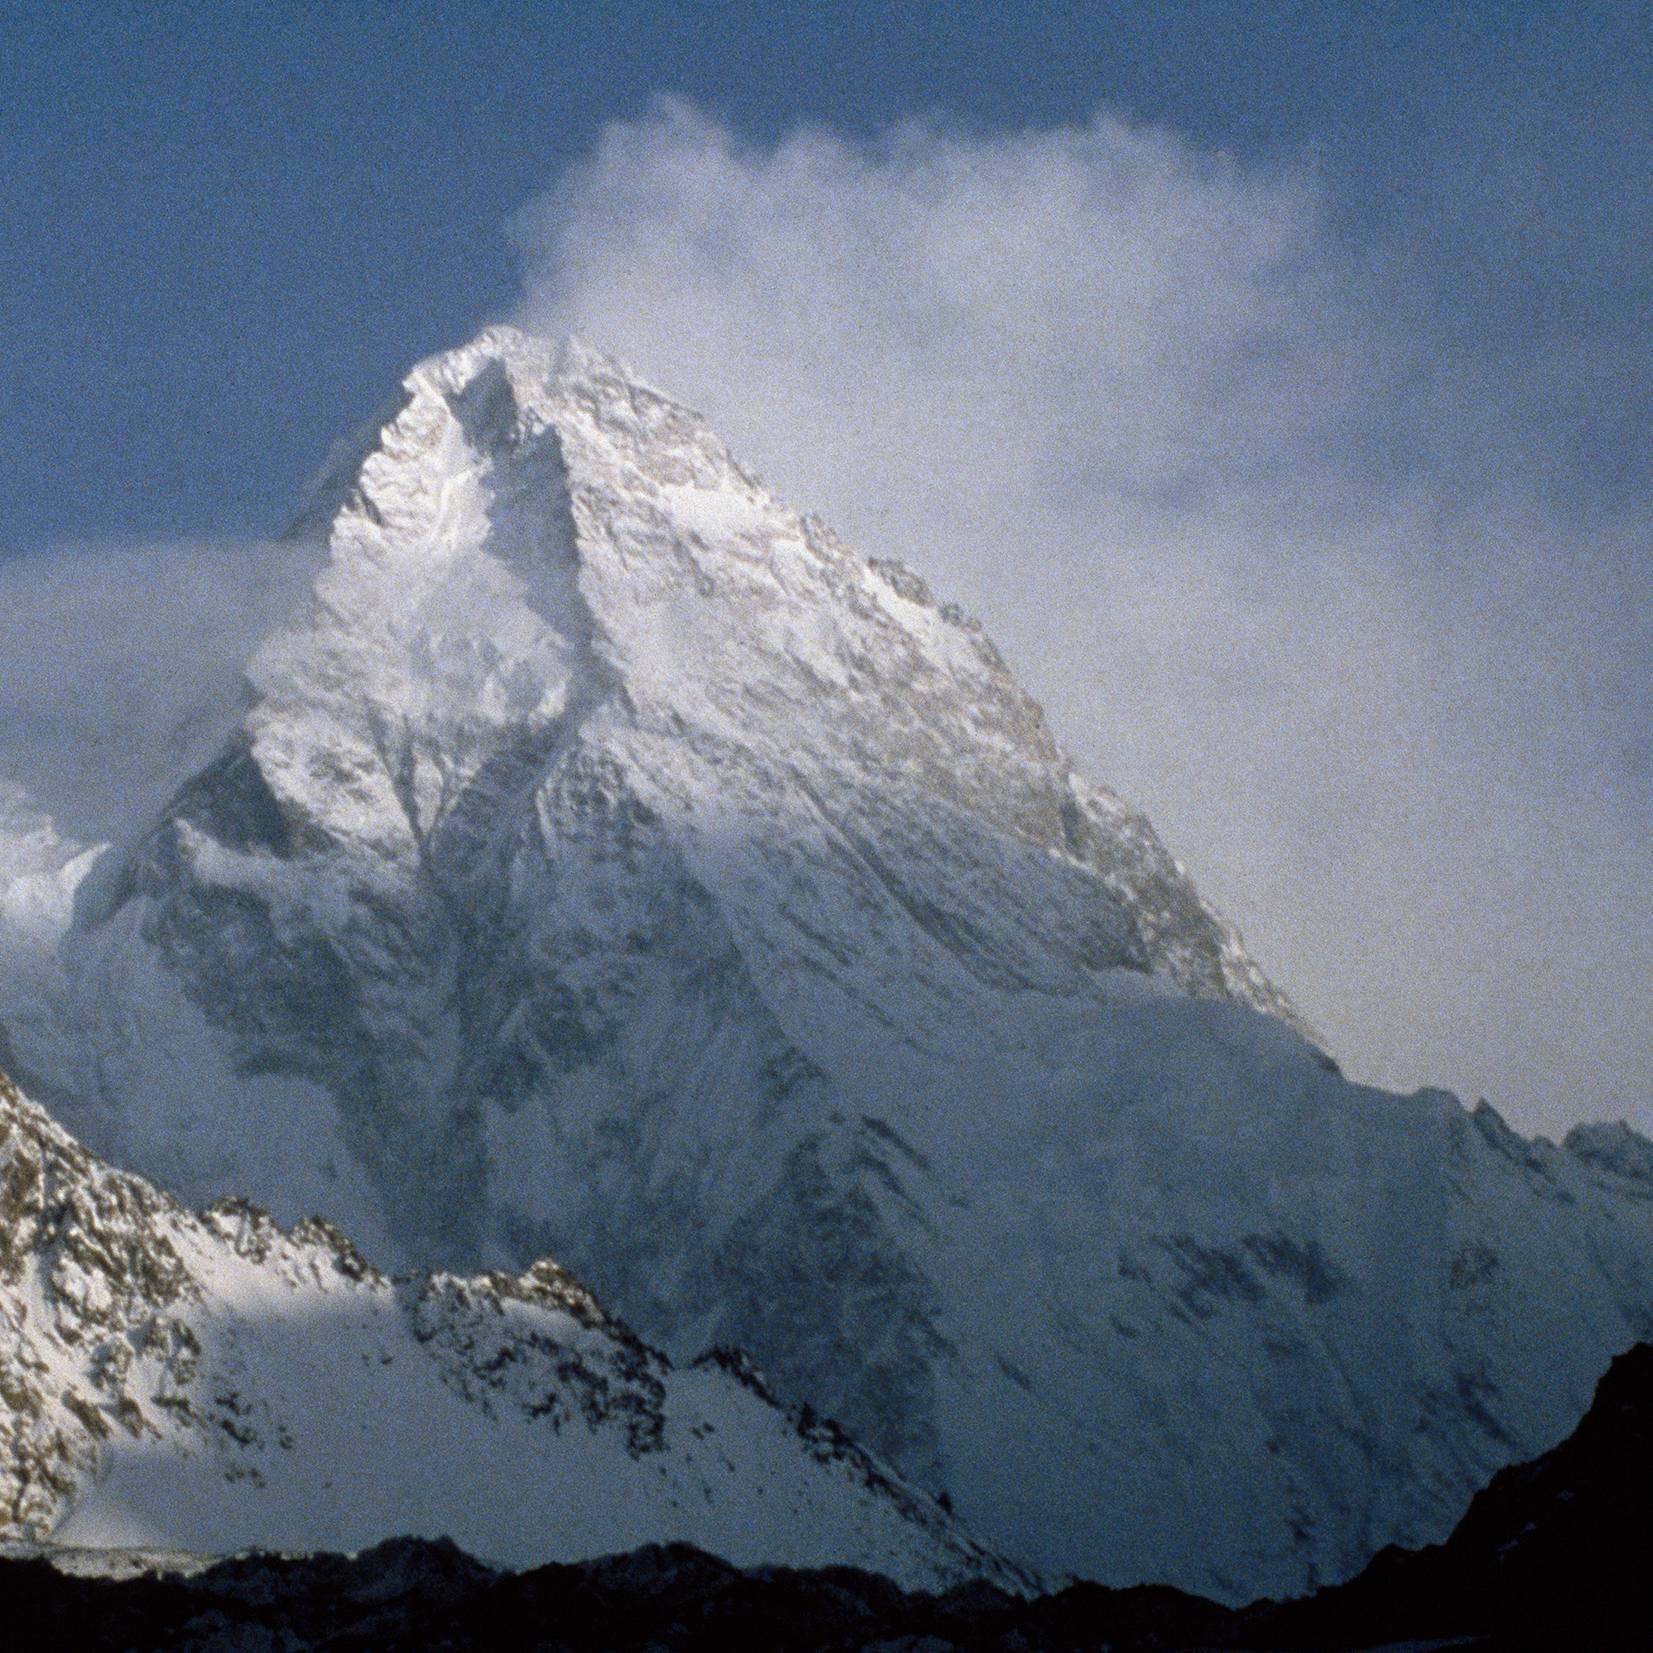 At 8,616 meters, Pakistan's K2 is a few hundred feet shy of Mount Everest in height -- but it is widely viewed as a more difficult and more dangerous summit.